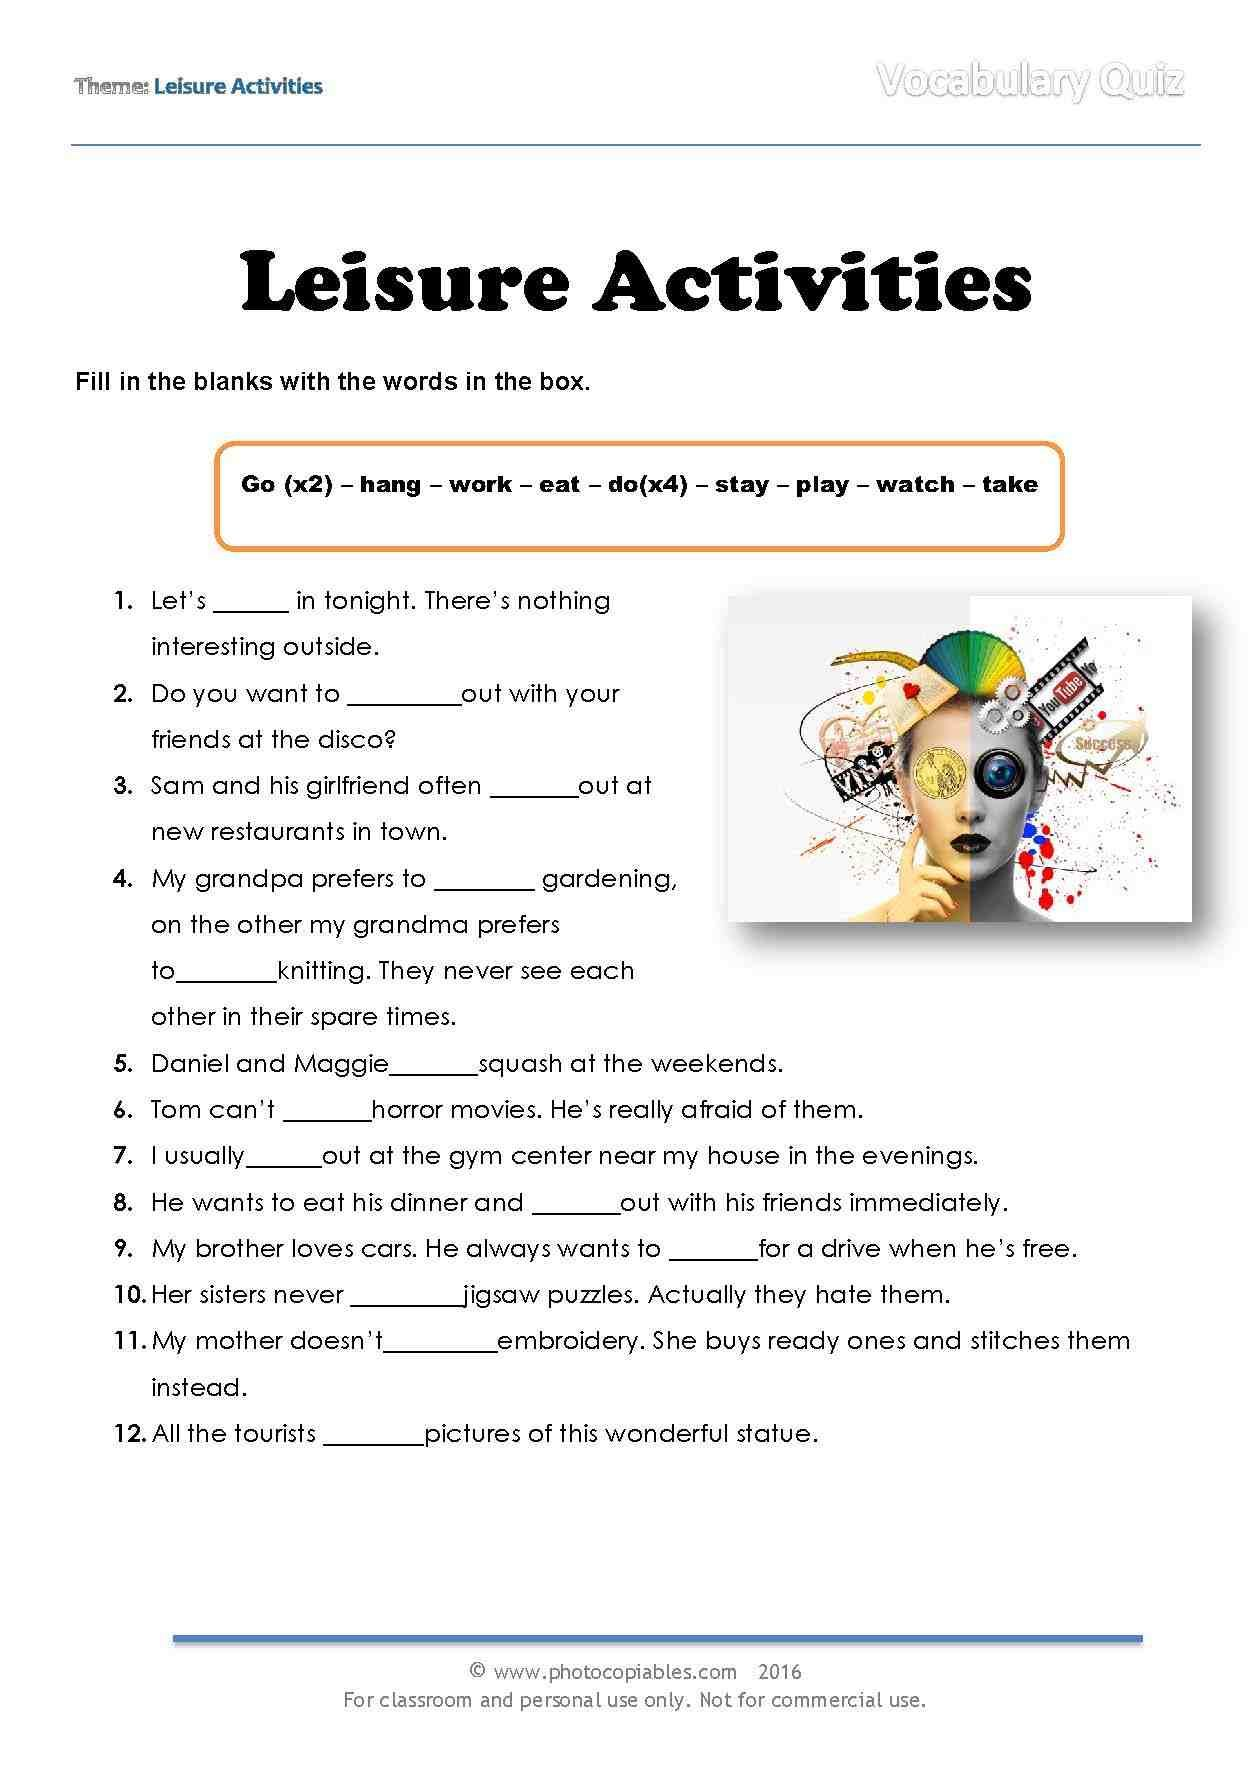 Leisure Activities Vocabulary Quiz With Images